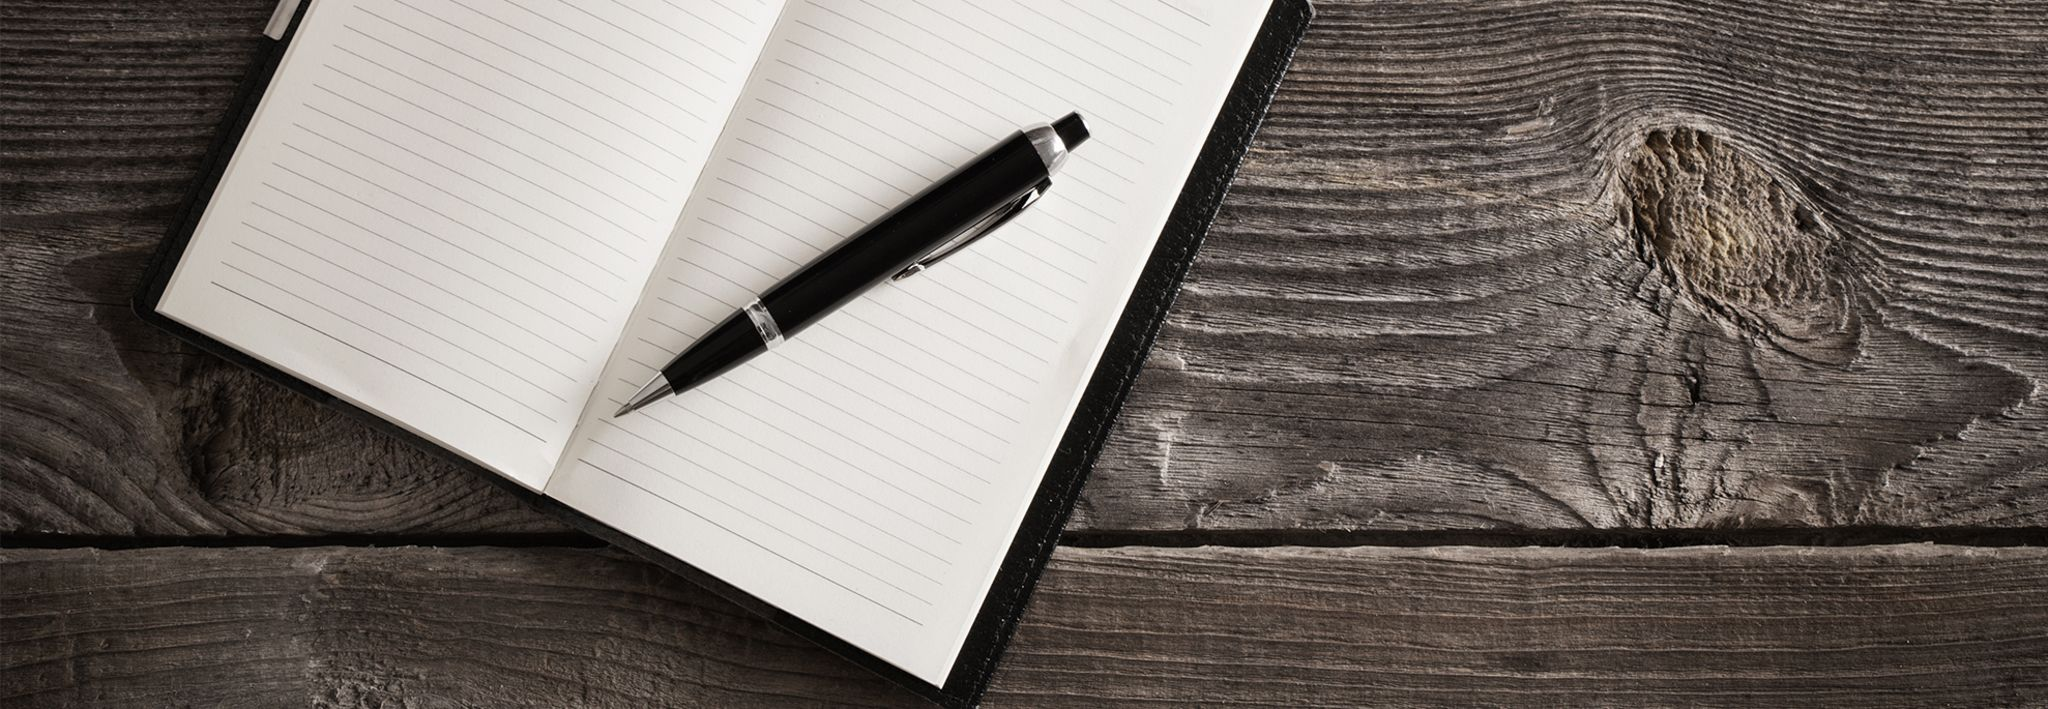 A pen and a notepad are laying on a wooden table.